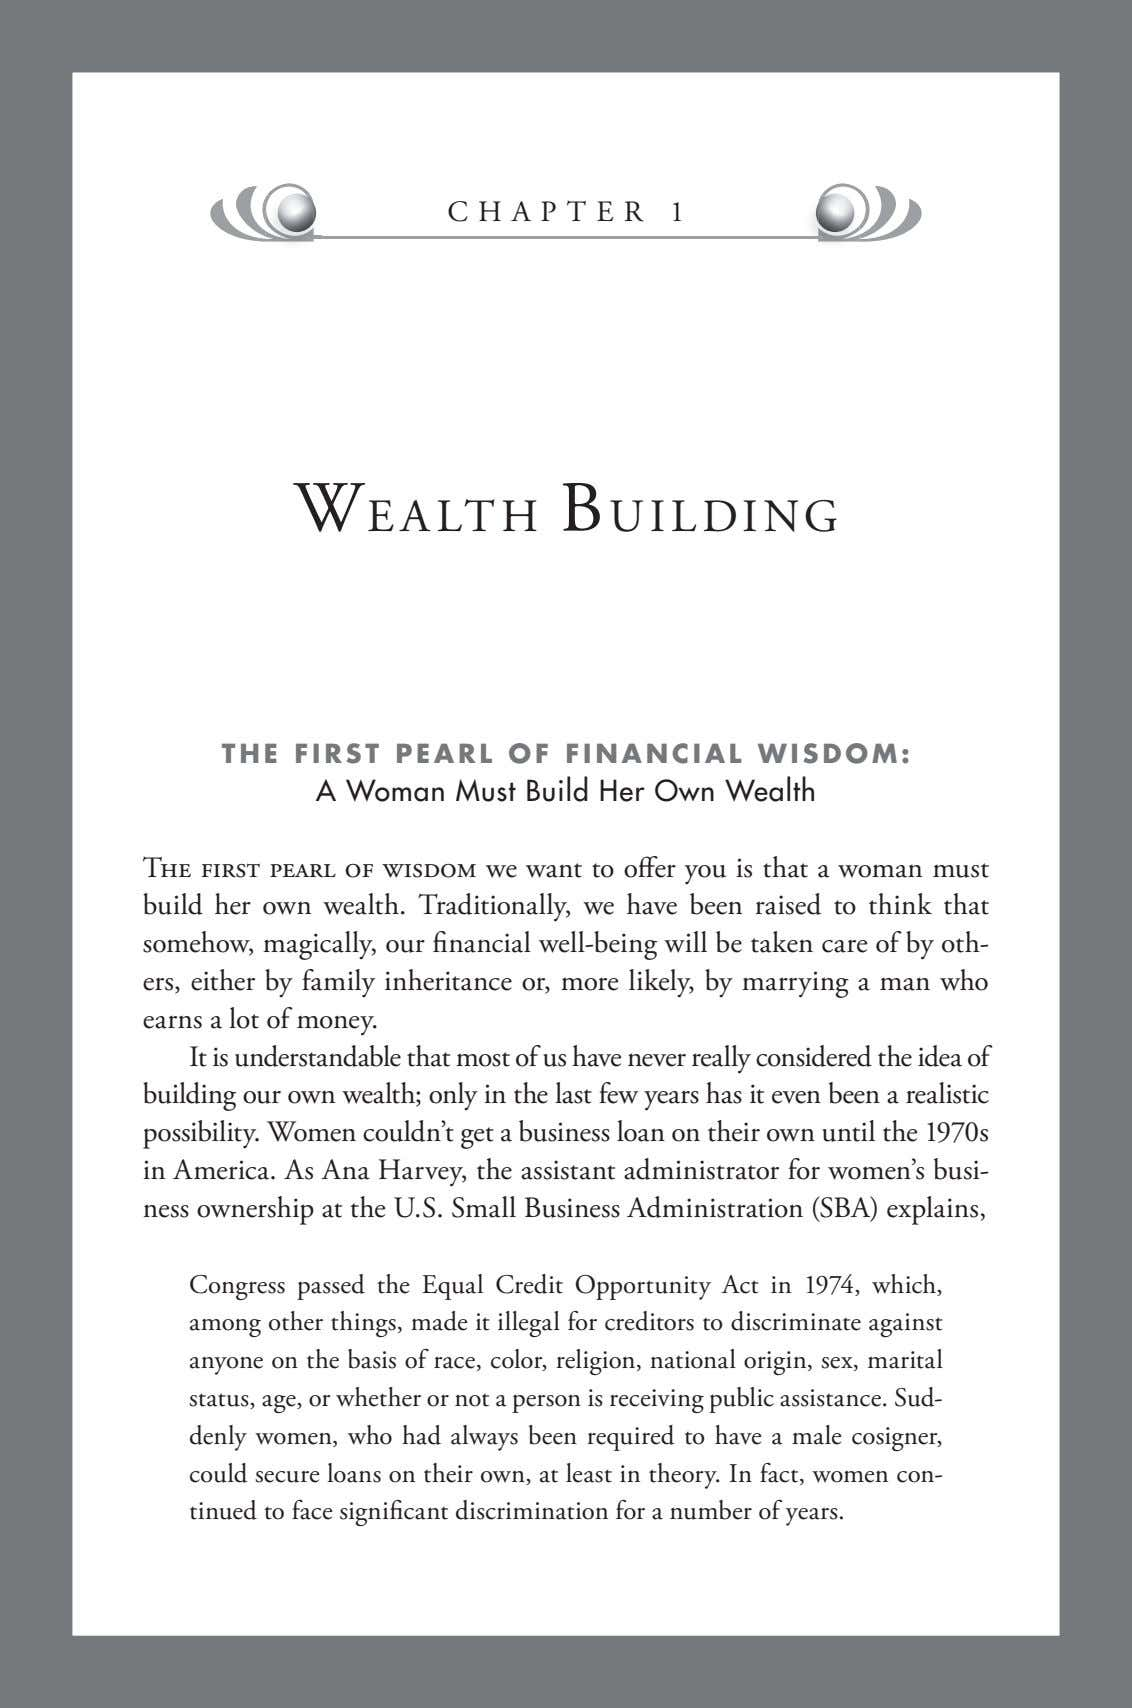 CHAPTER 1 WEALTH BUILDING THE FIRST PEARL OF FINANCIAL WISDOM: A Woman Must Build Her